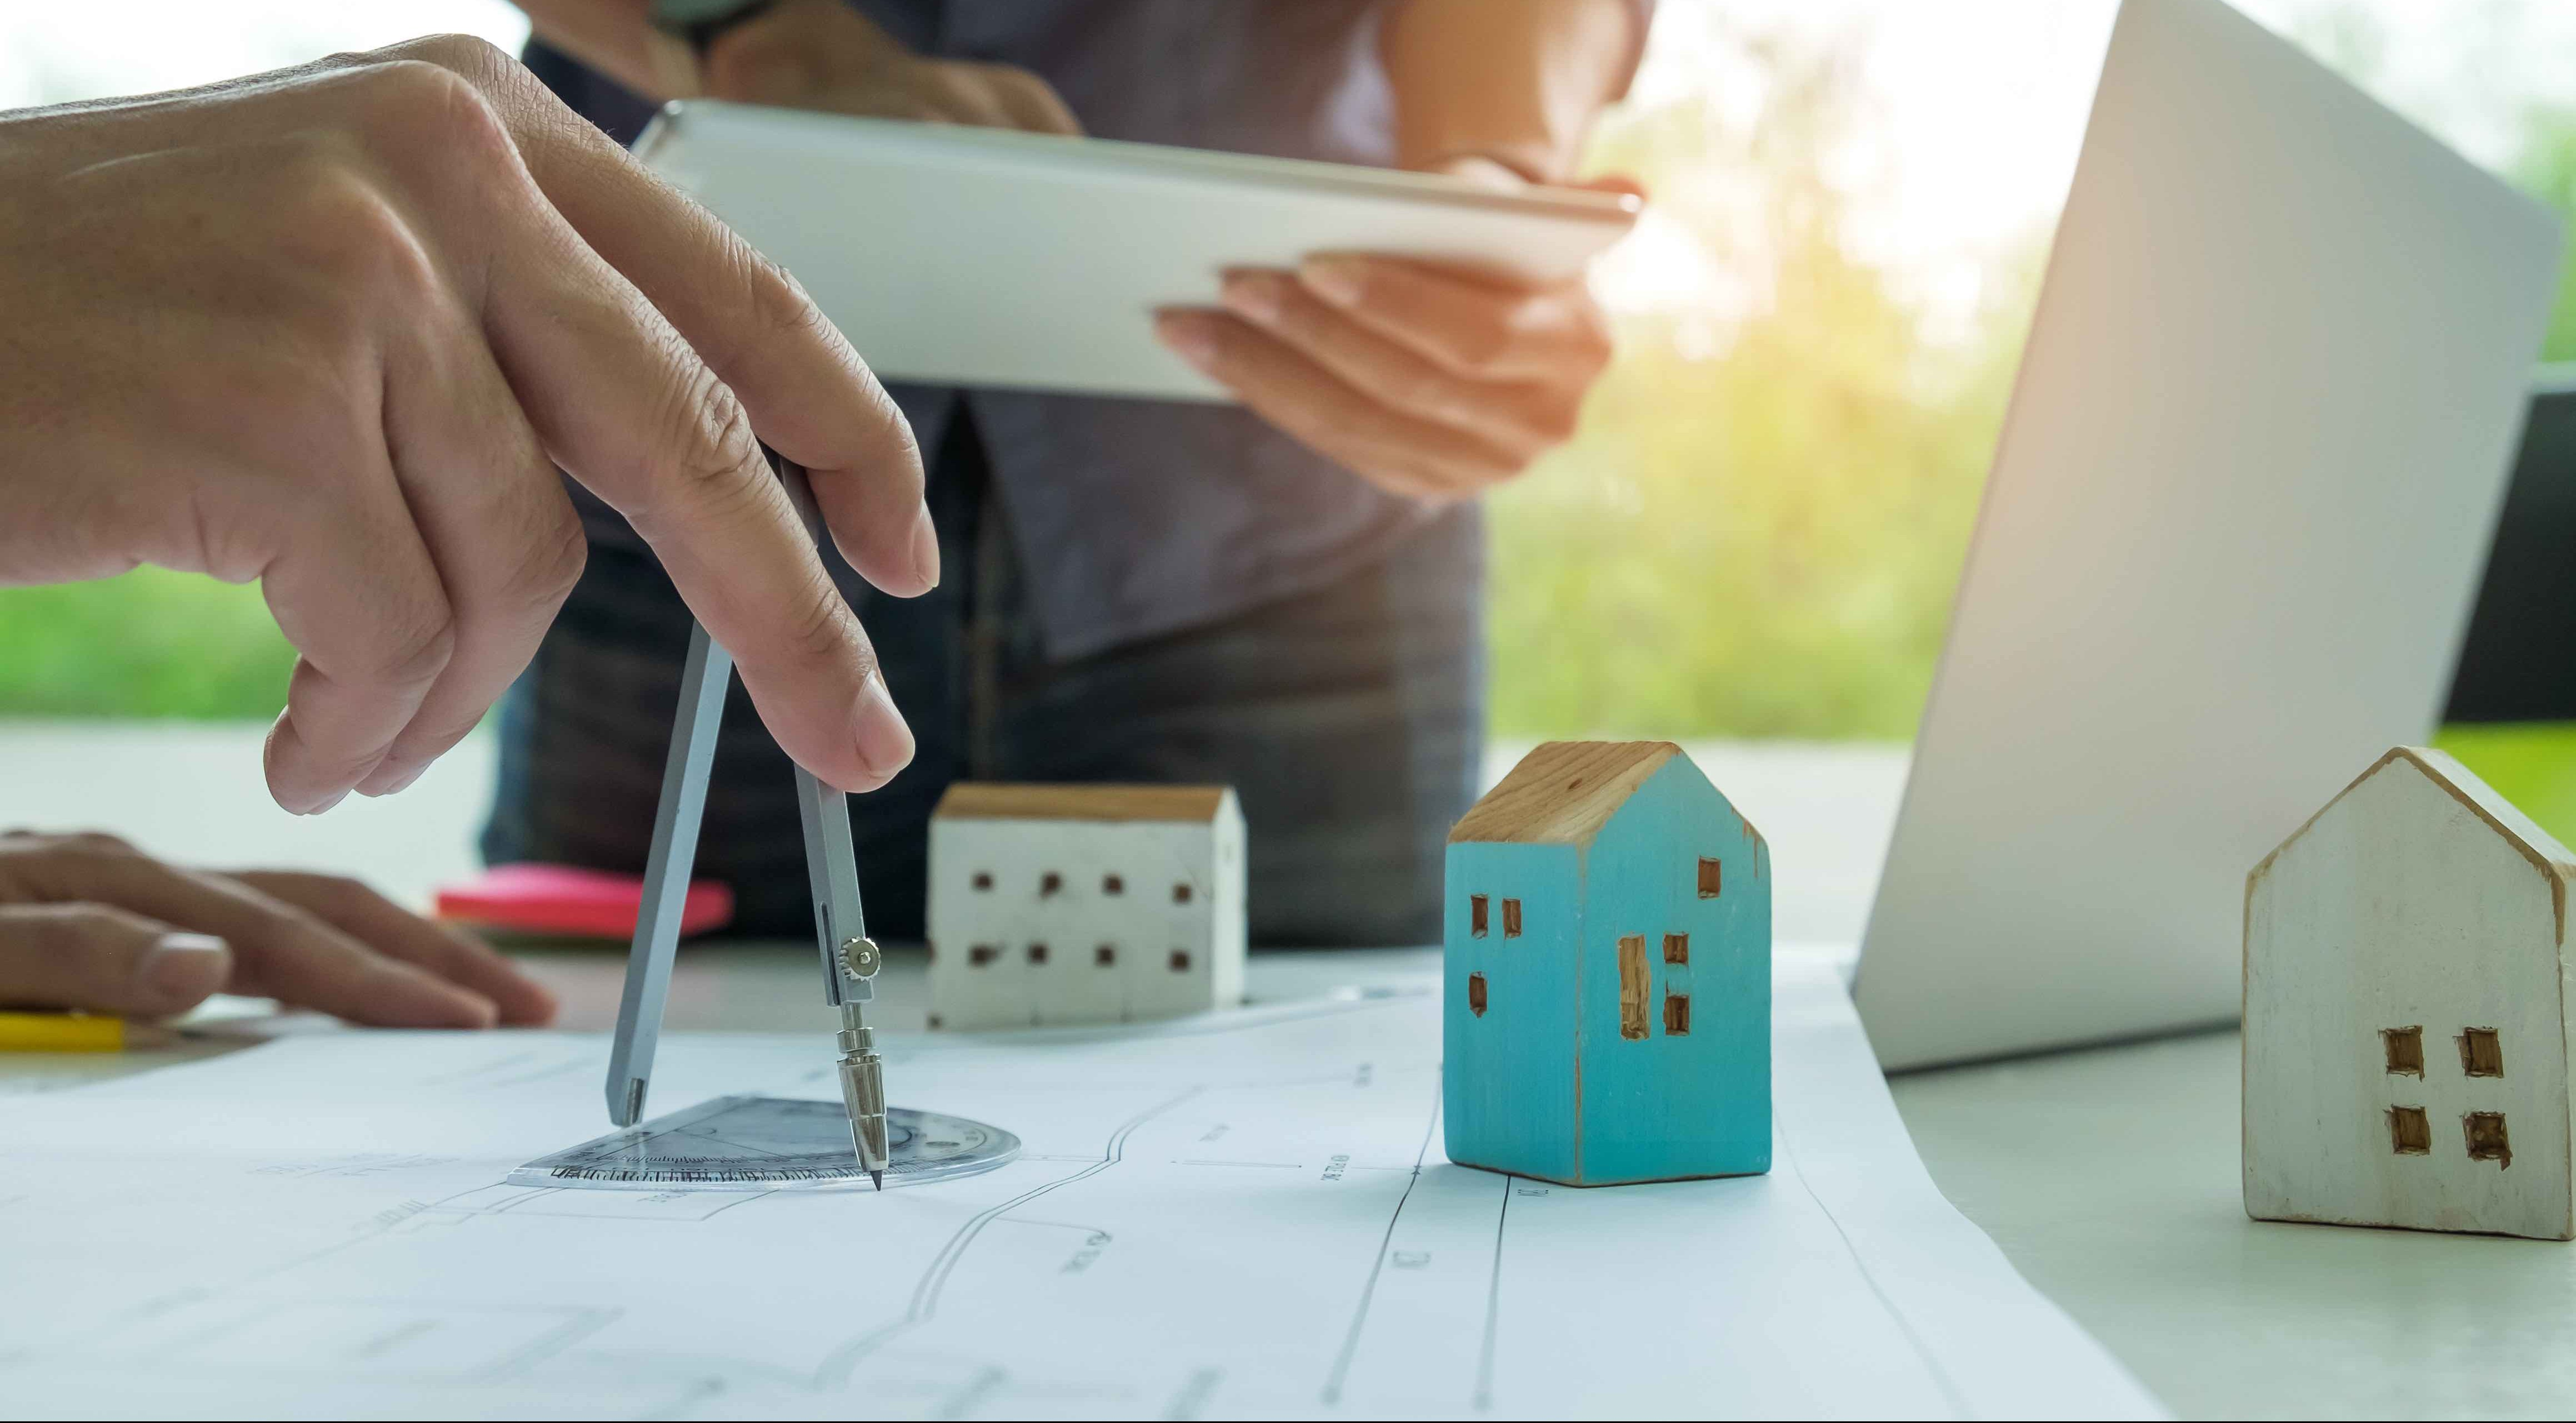 Engineers Are Designing Housesengineers Are Using A Home